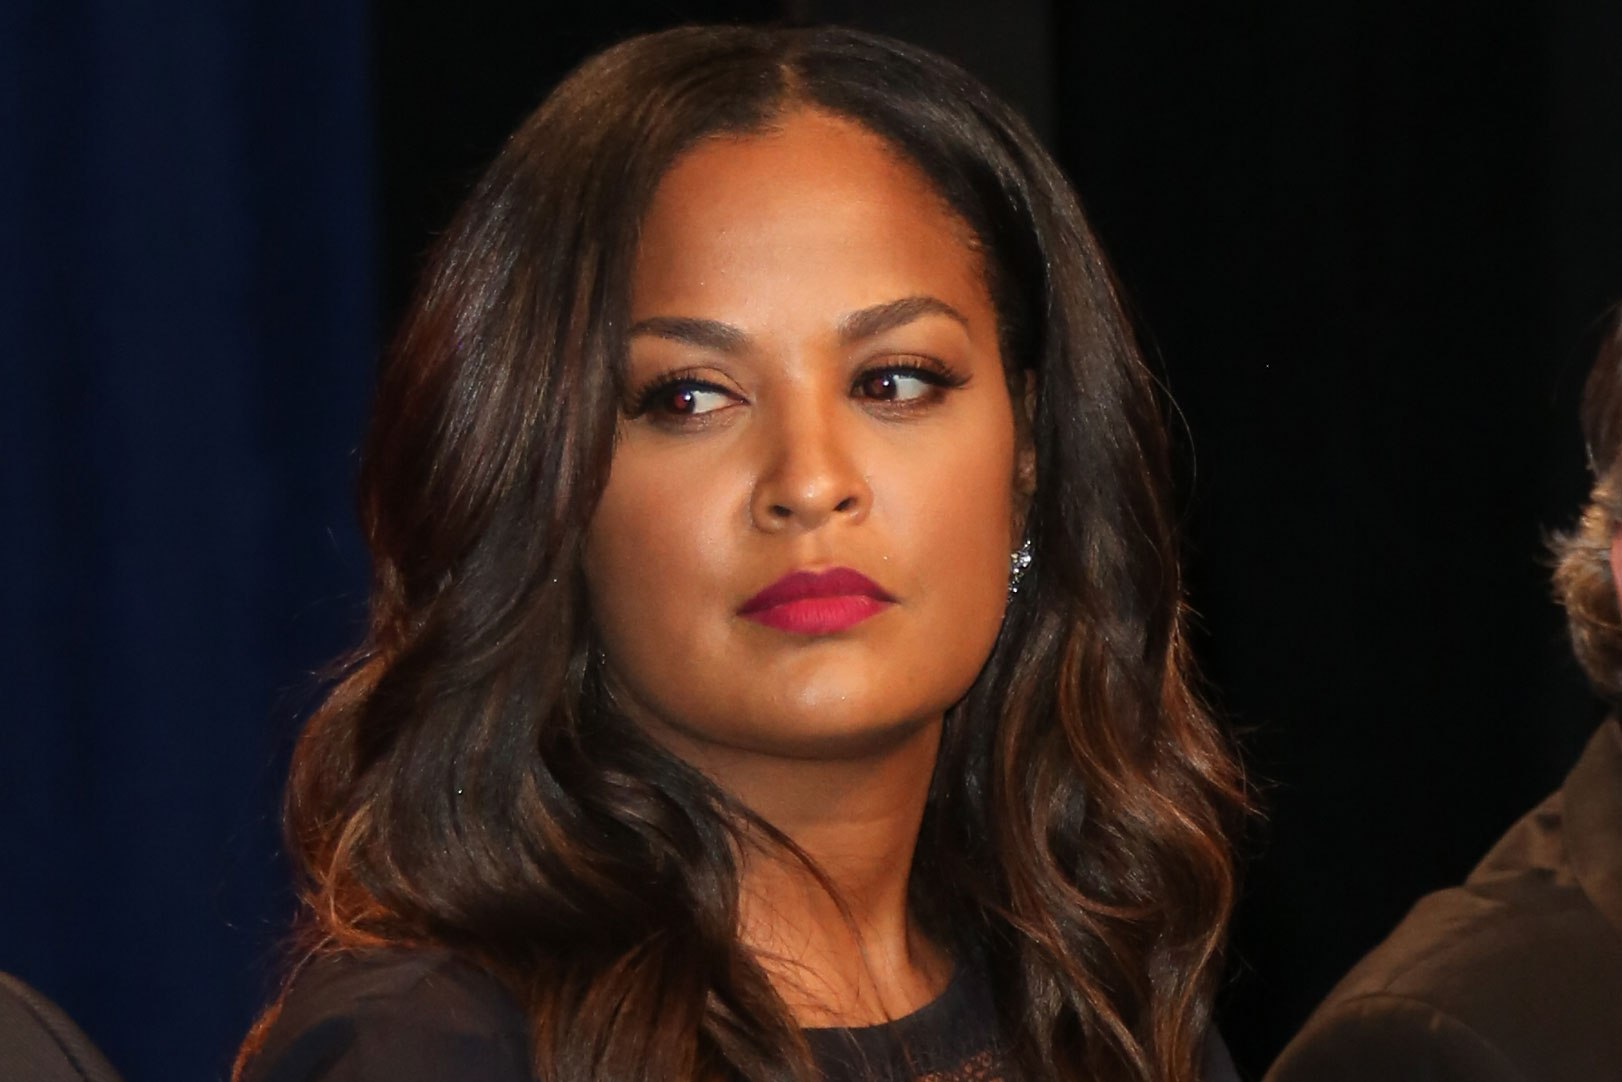 Laila Ali accidentally backs into pedestrian with her car